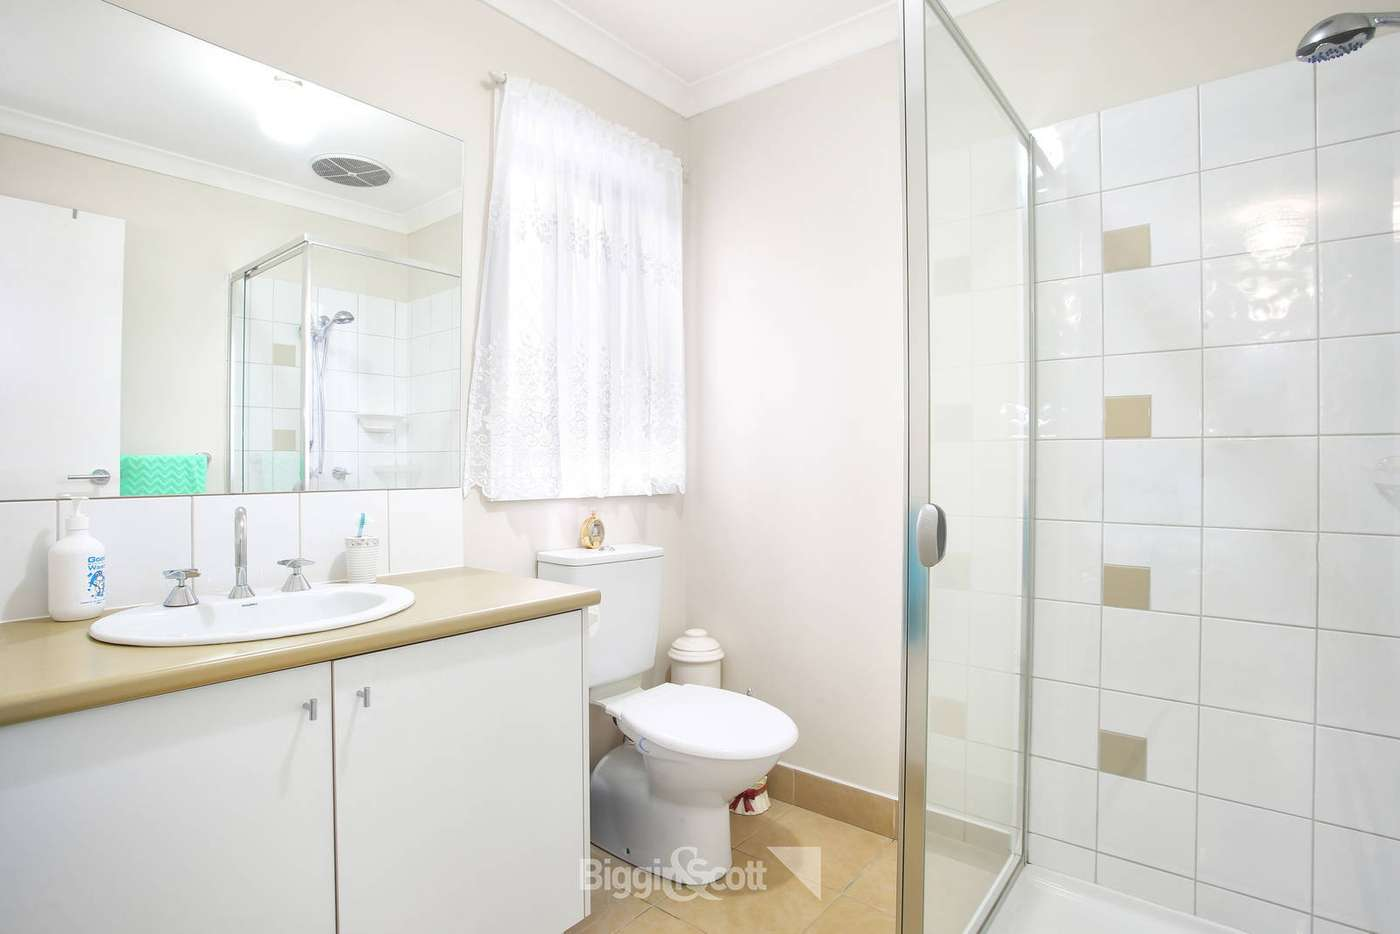 Fifth view of Homely house listing, 5 Ella Paige Place, Carrum Downs VIC 3201